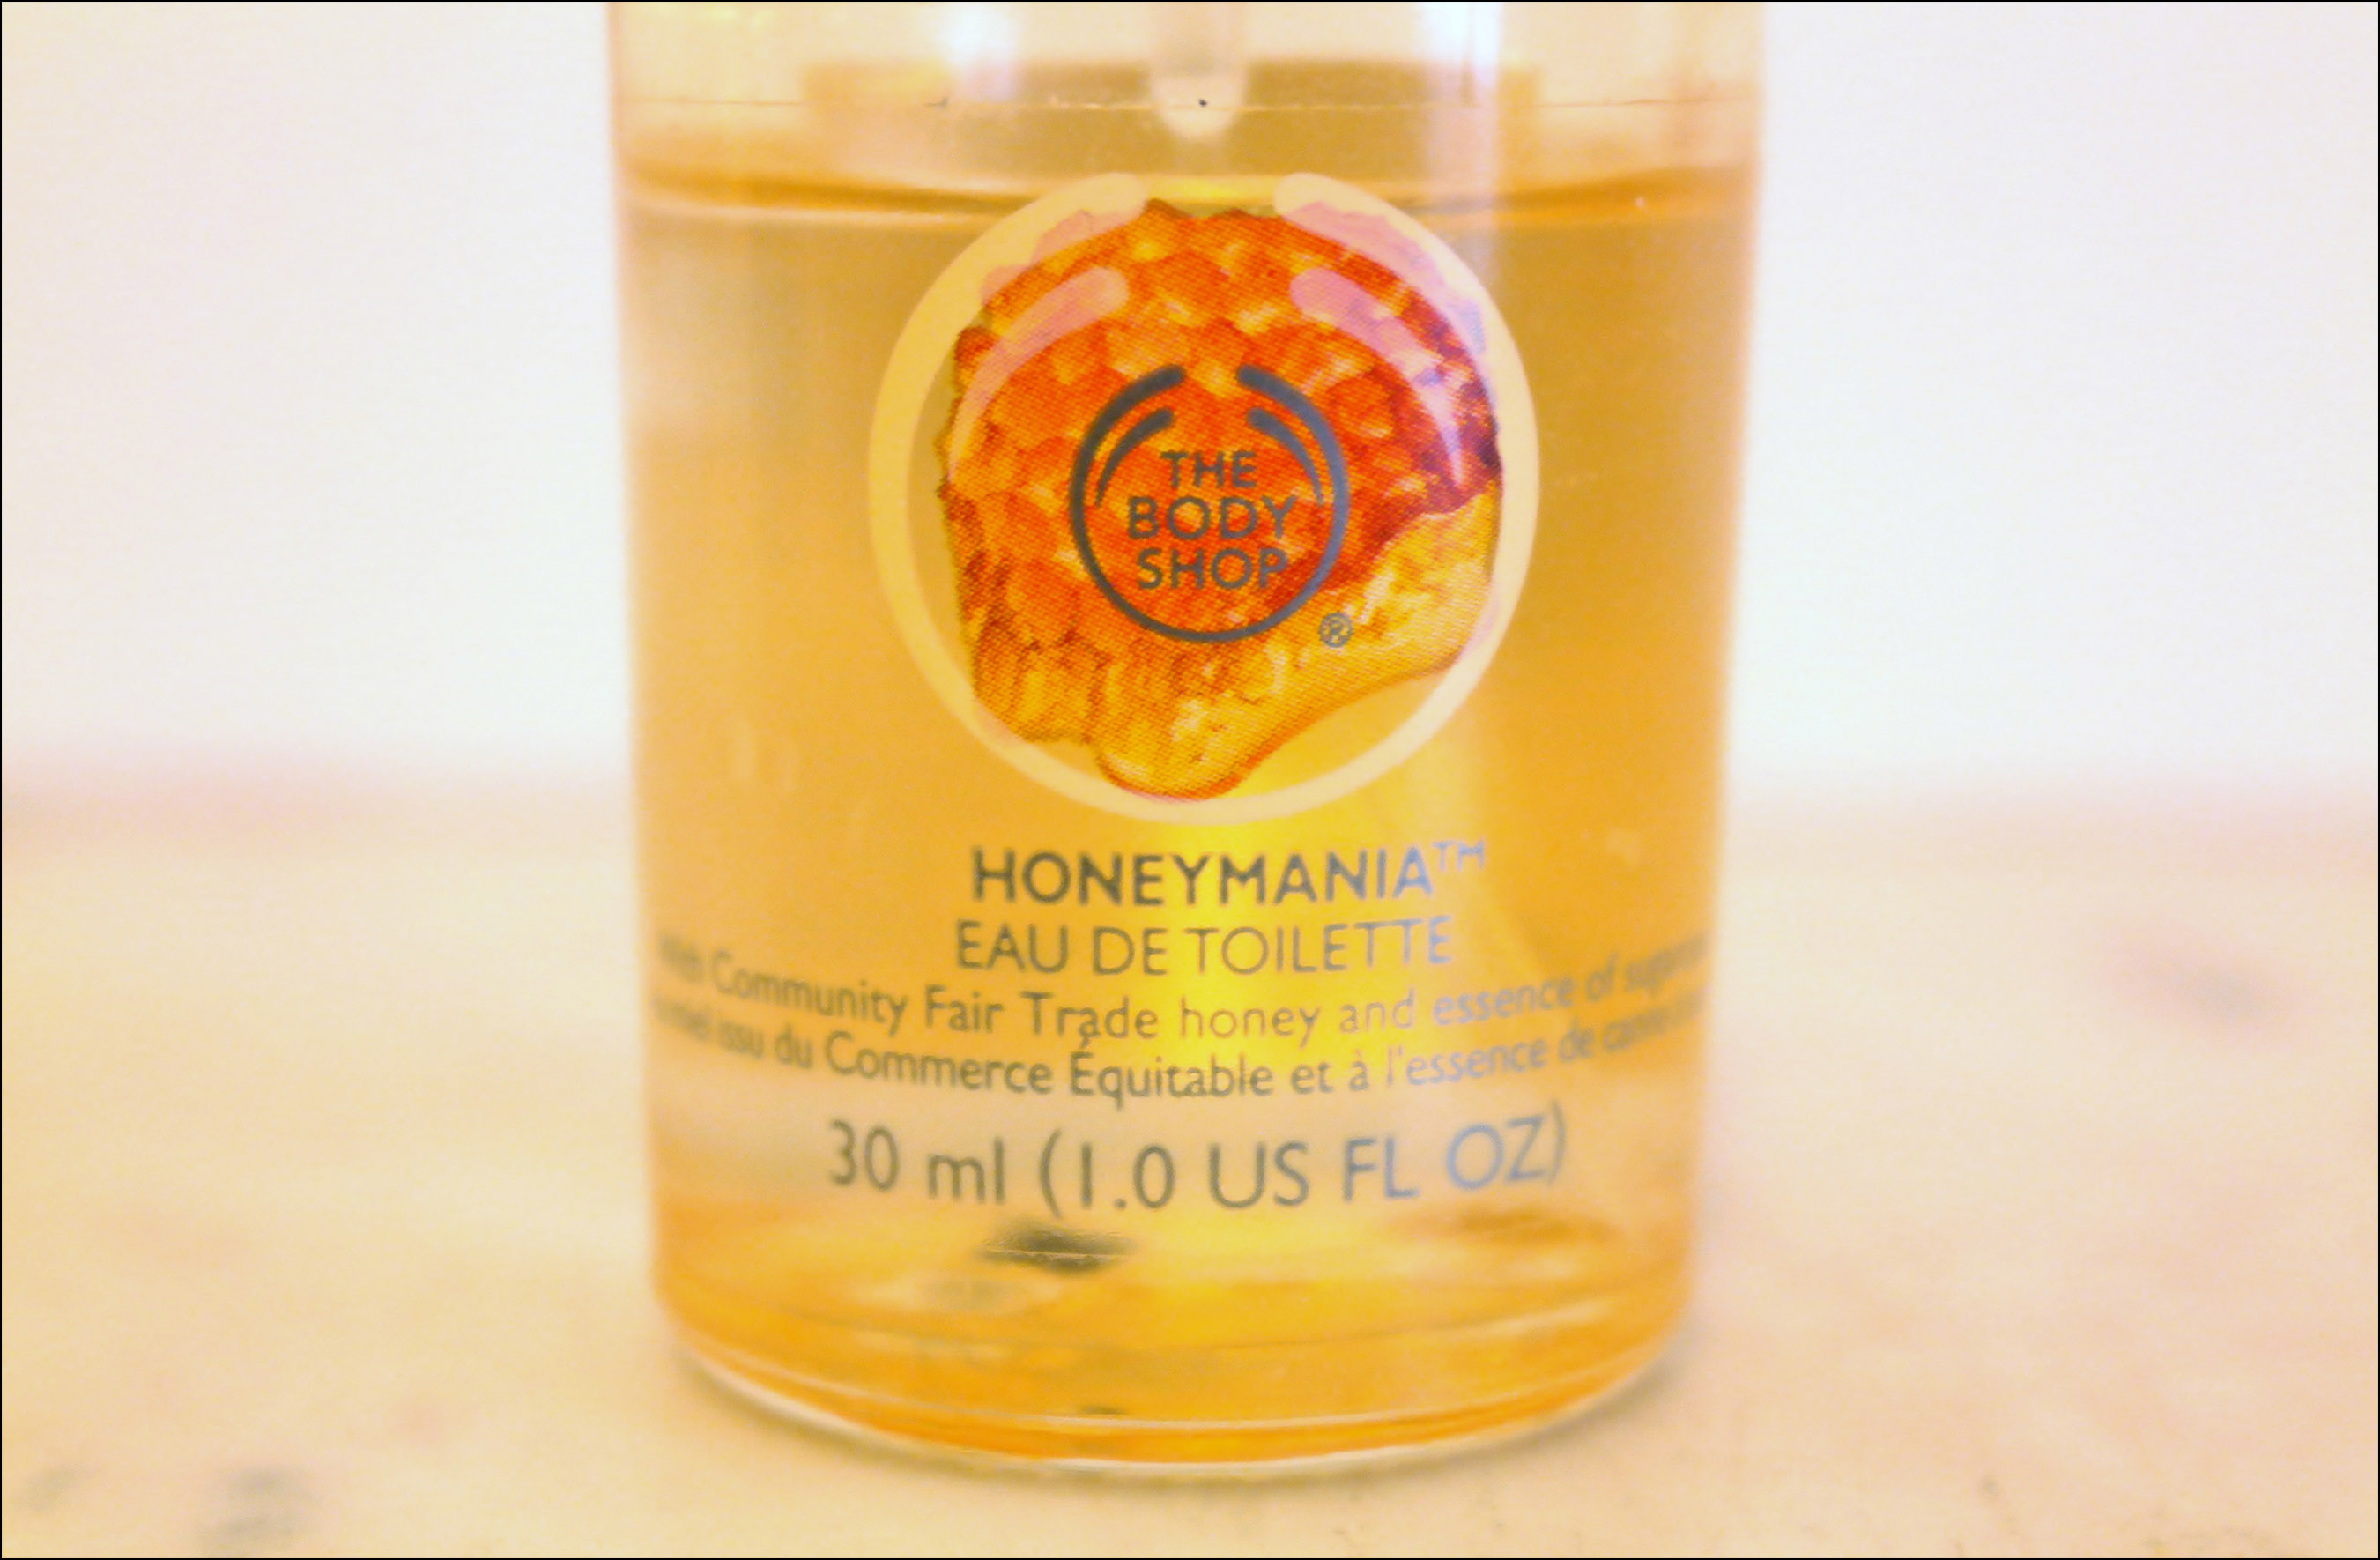 the body shop, eau de toilette, parfum, moringa, honeymania